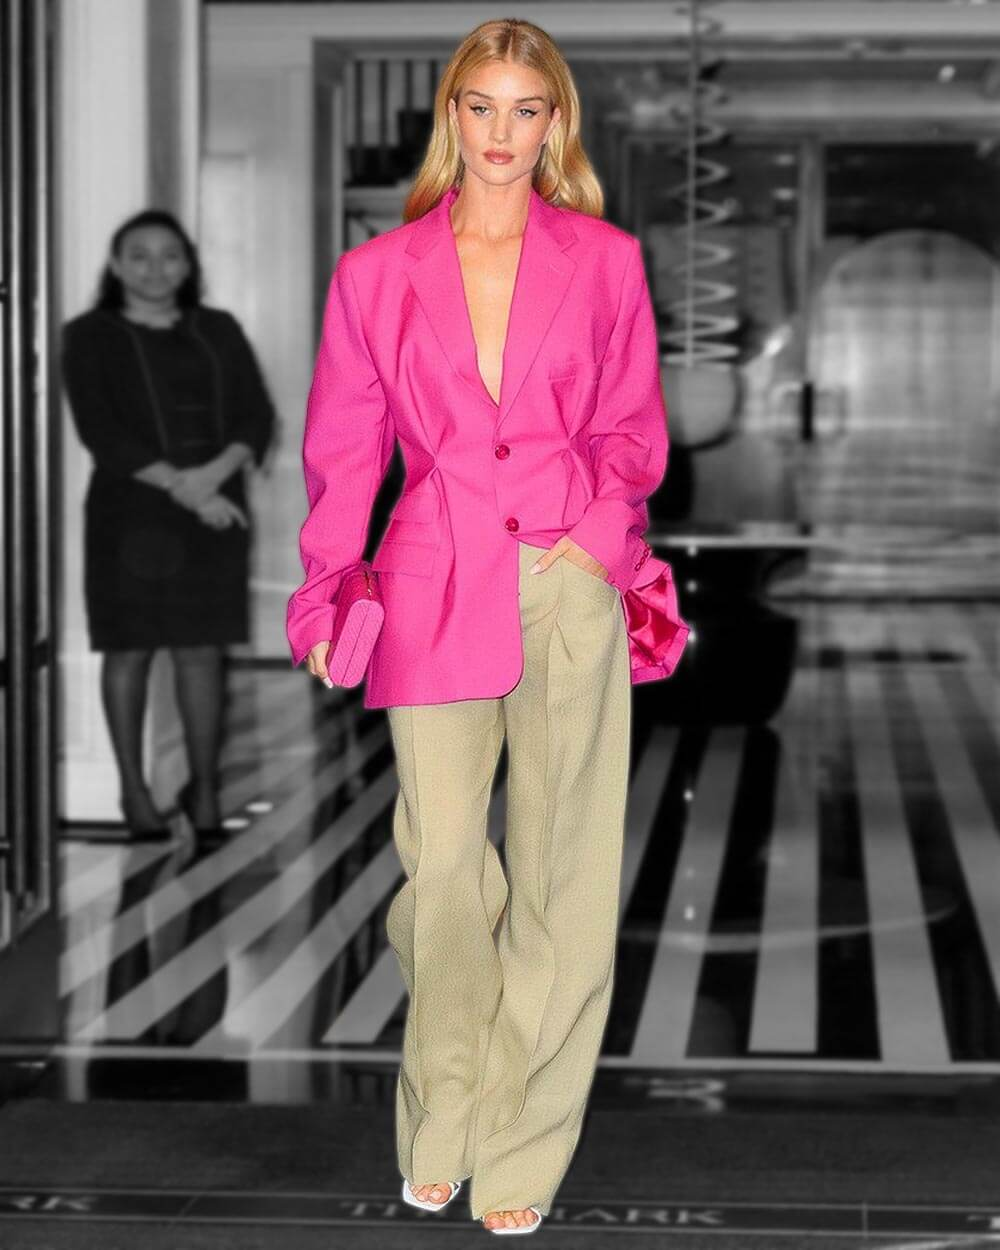 Color blocking fashion trends 2021